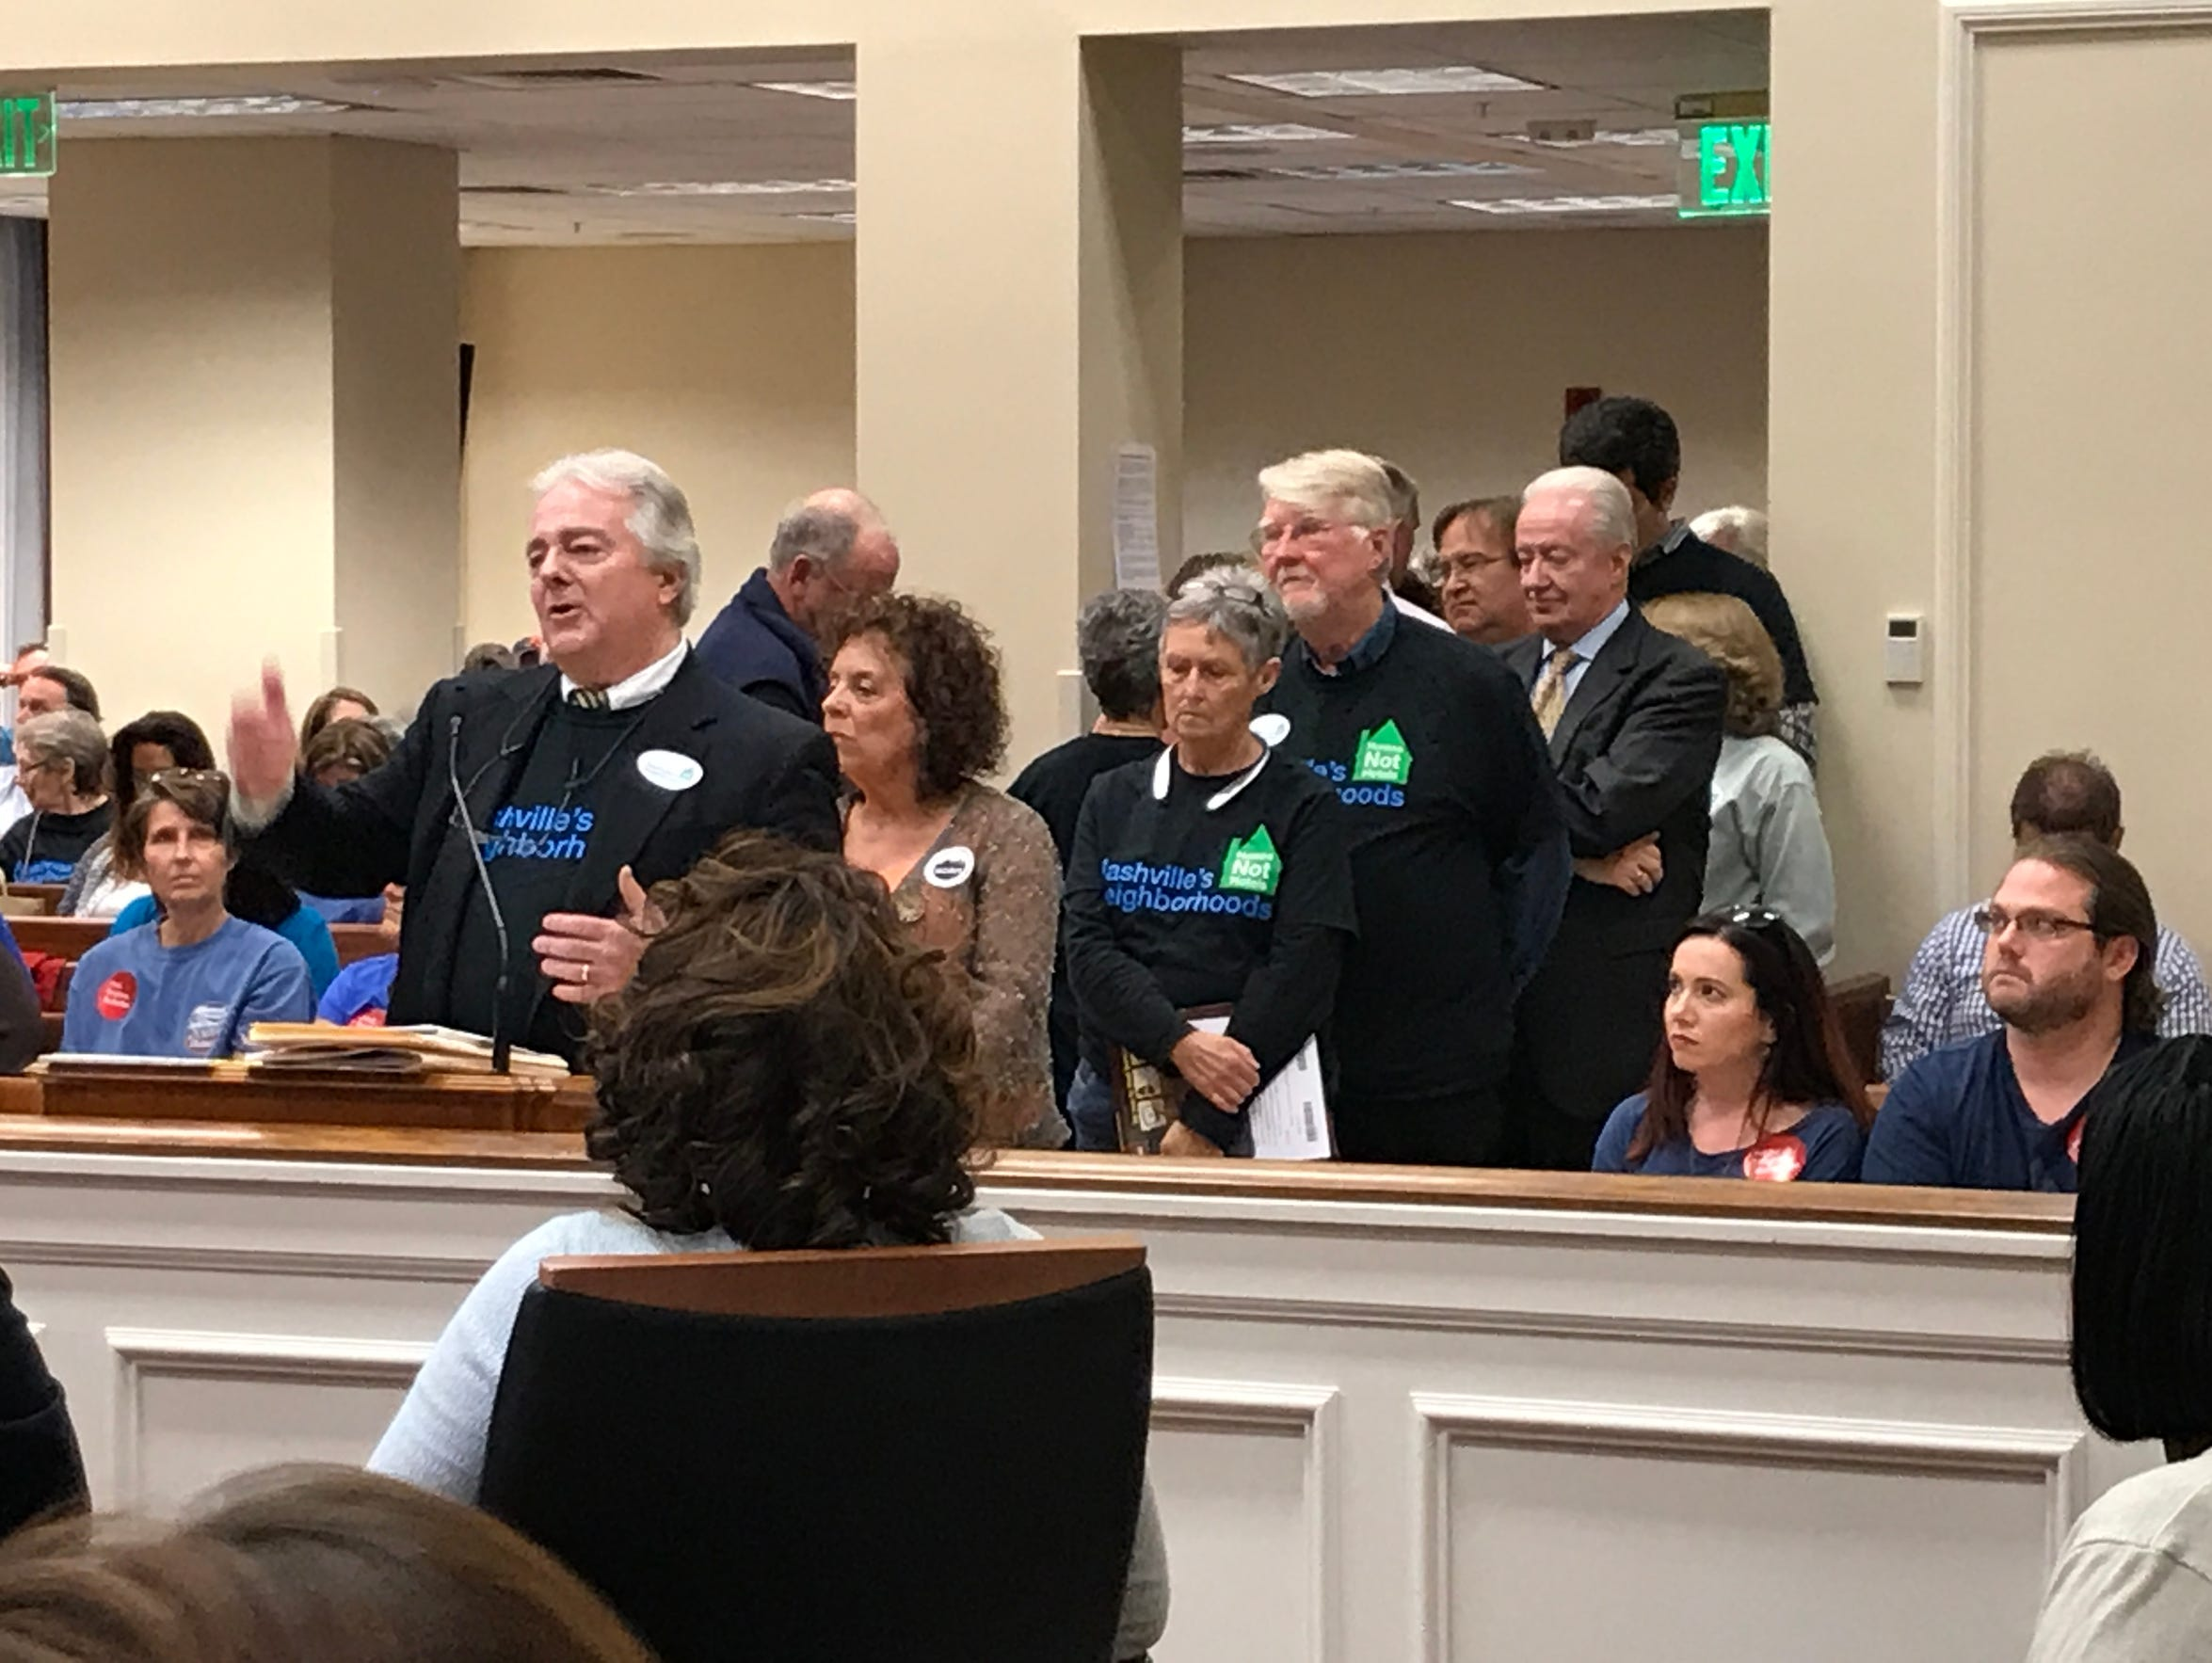 Opponents of short-term rentals, led by John Summers,